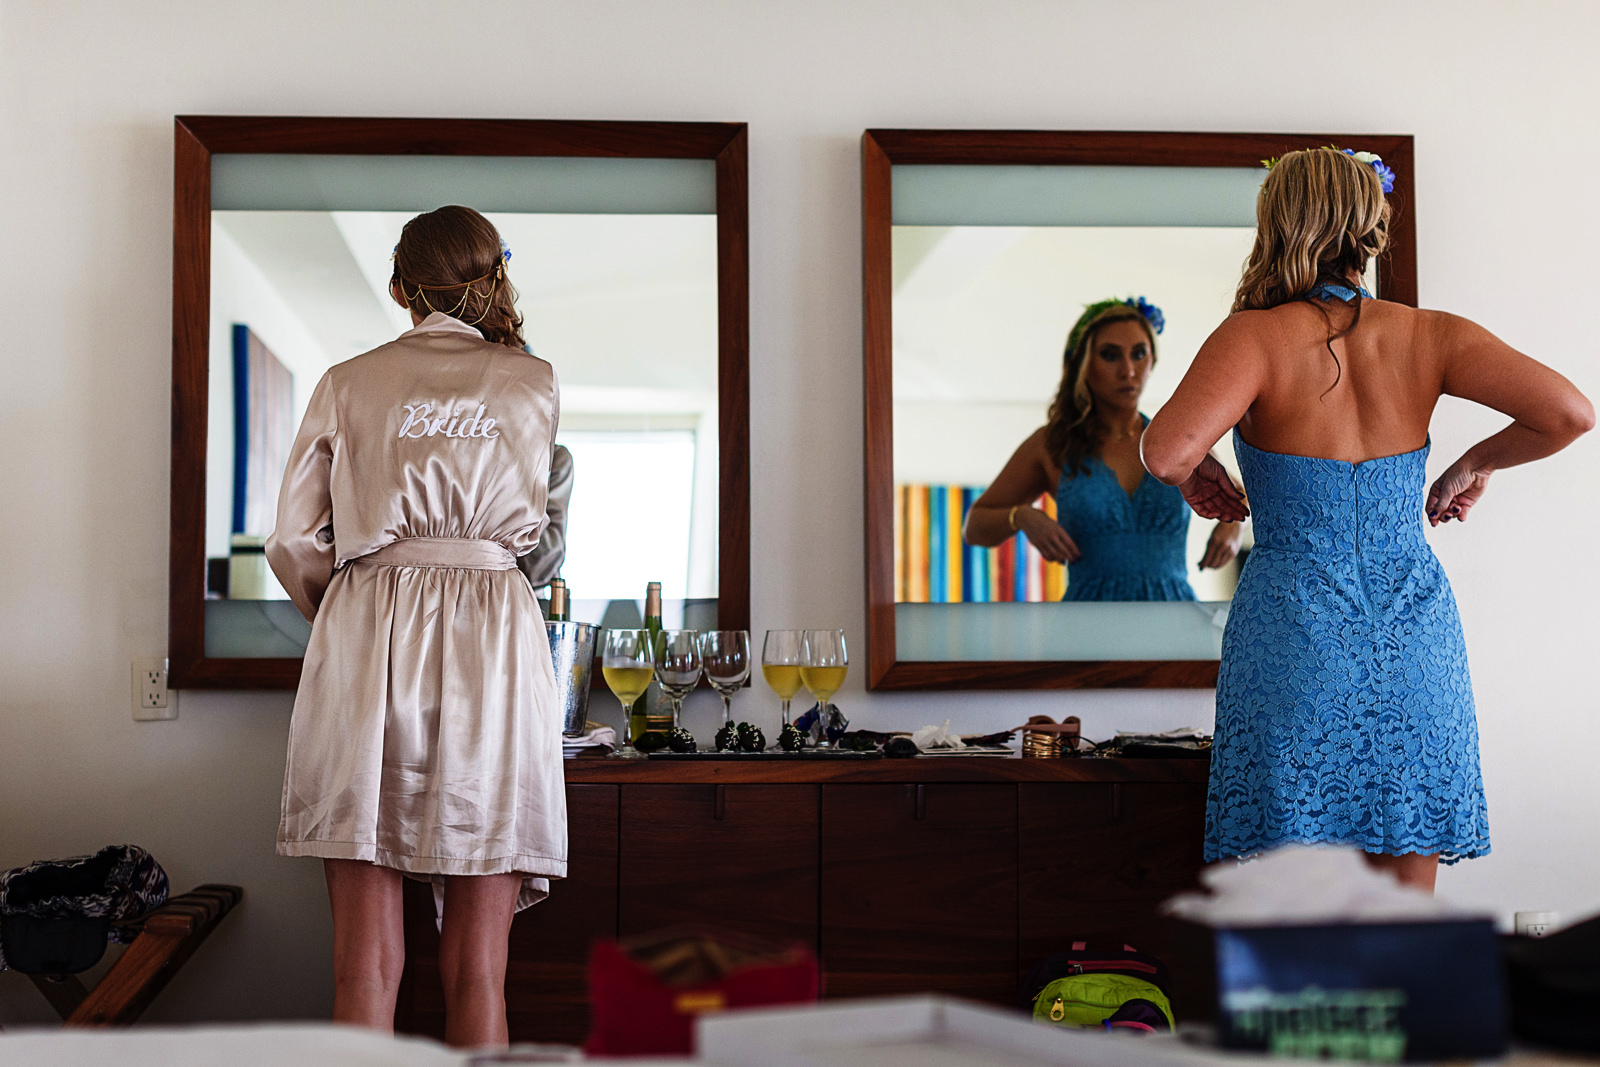 Bride in rope and maid of honor already dressed up in front of the mirrors of the suite bedroom